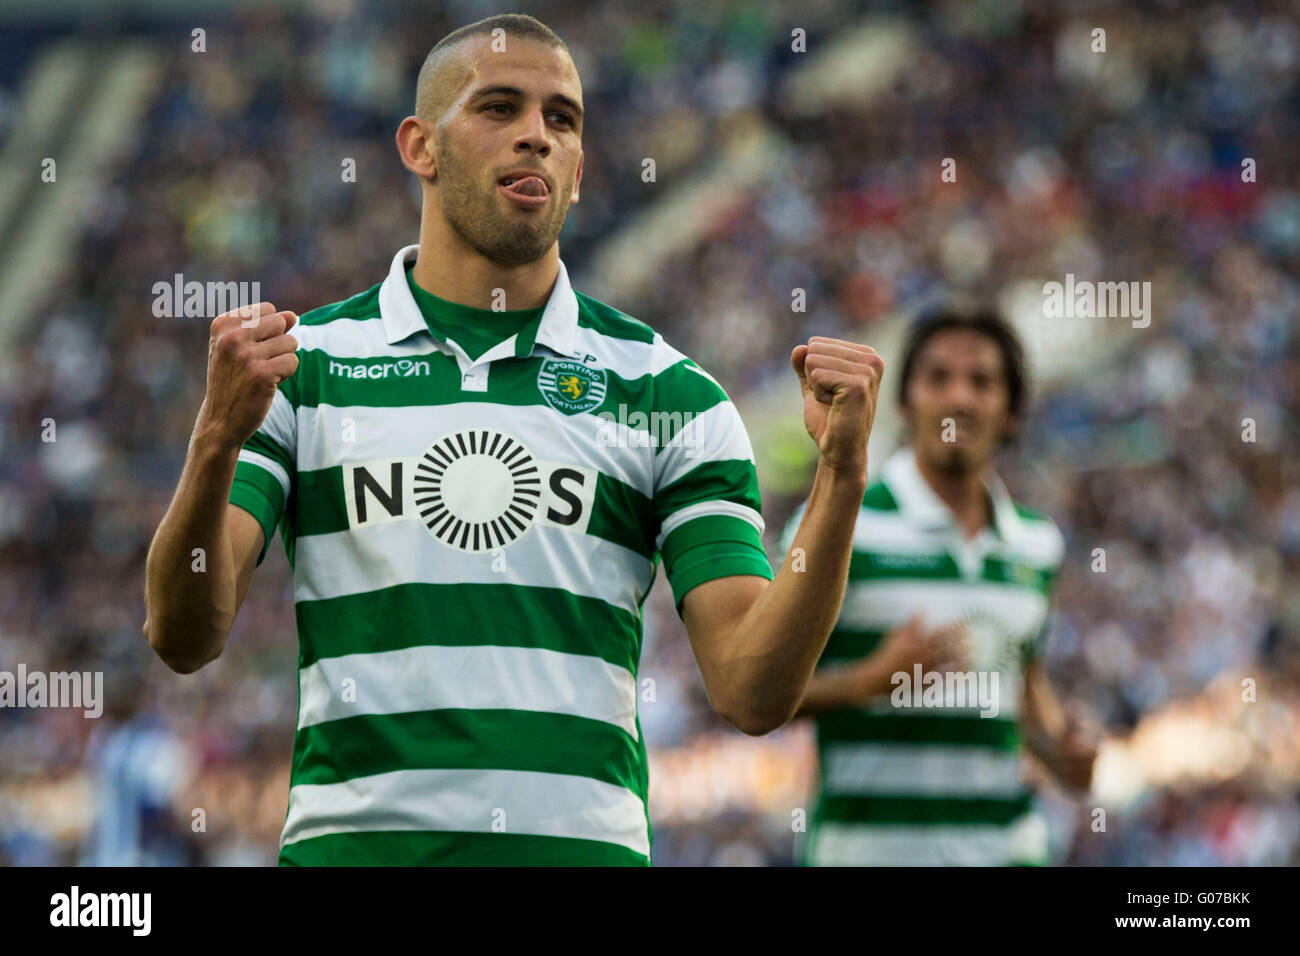 Sporting Cp Stock Photos   Sporting Cp Stock Images - Page 2 - Alamy b97dcc96b